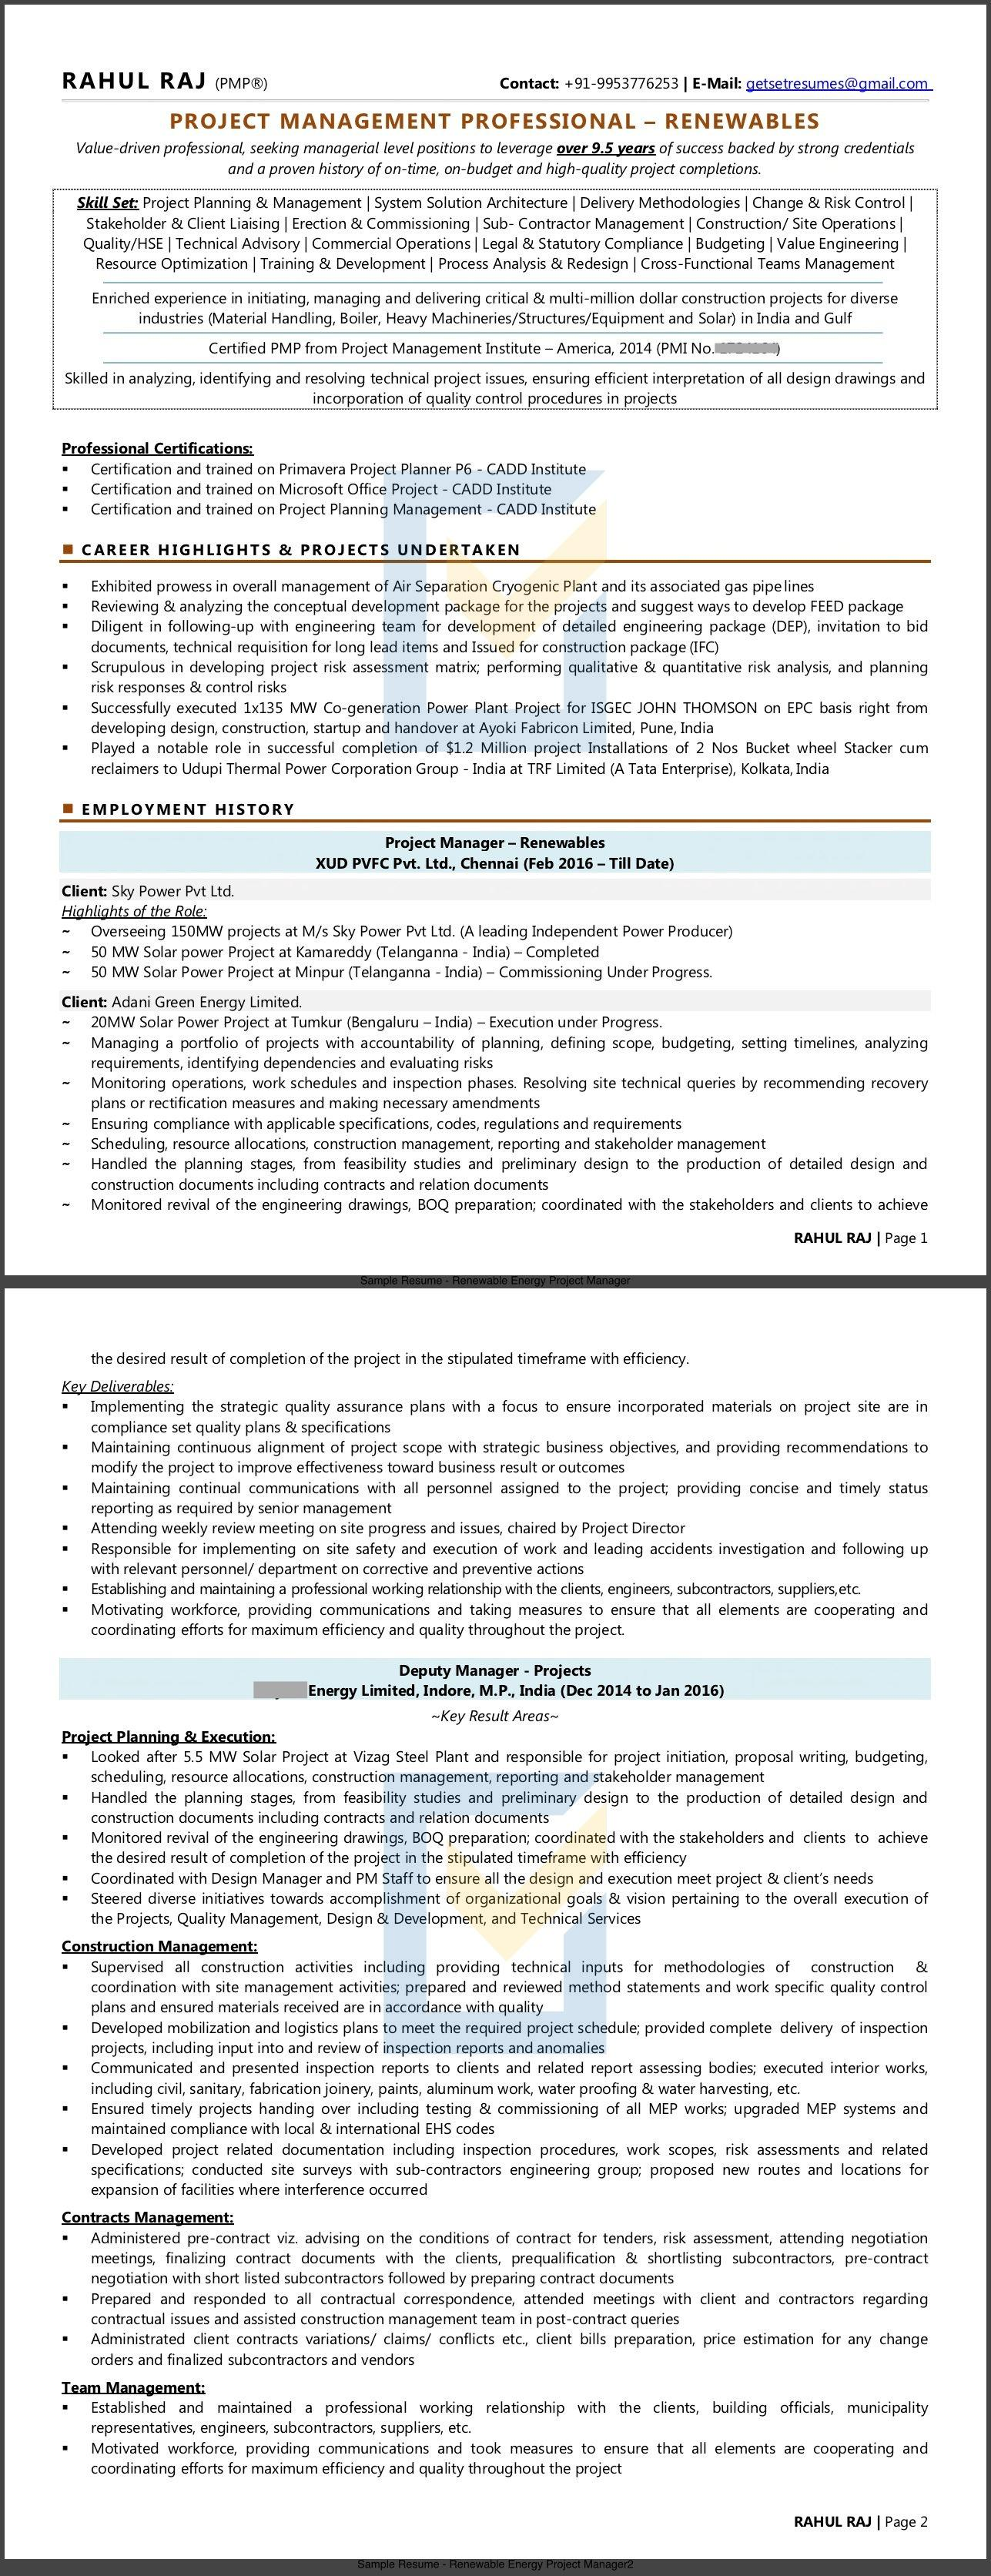 Sample Resume of PMP Project Manager in Renewable Energy / Solar sector